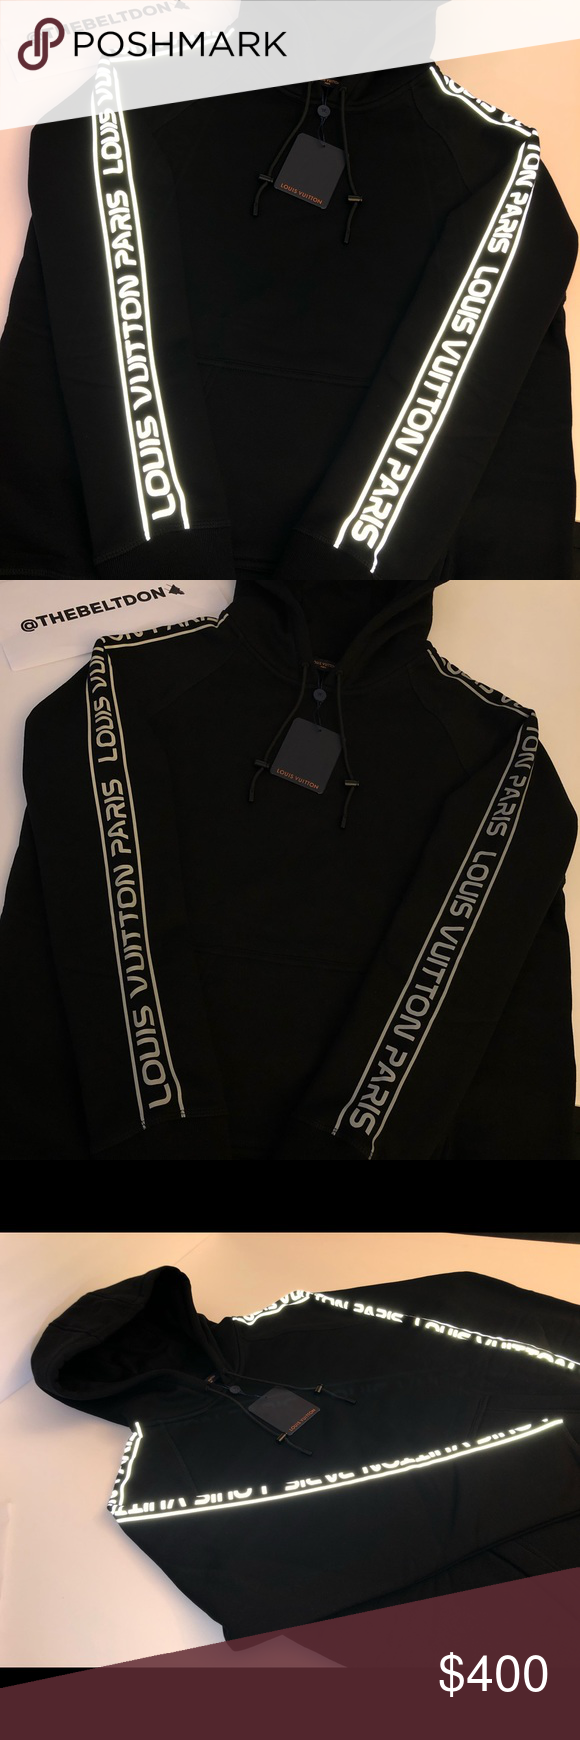 a7276a76988 Lv hoodie LV Reflective Sleeves Gravity Hoodie🌑💿 Louis Vuitton ...